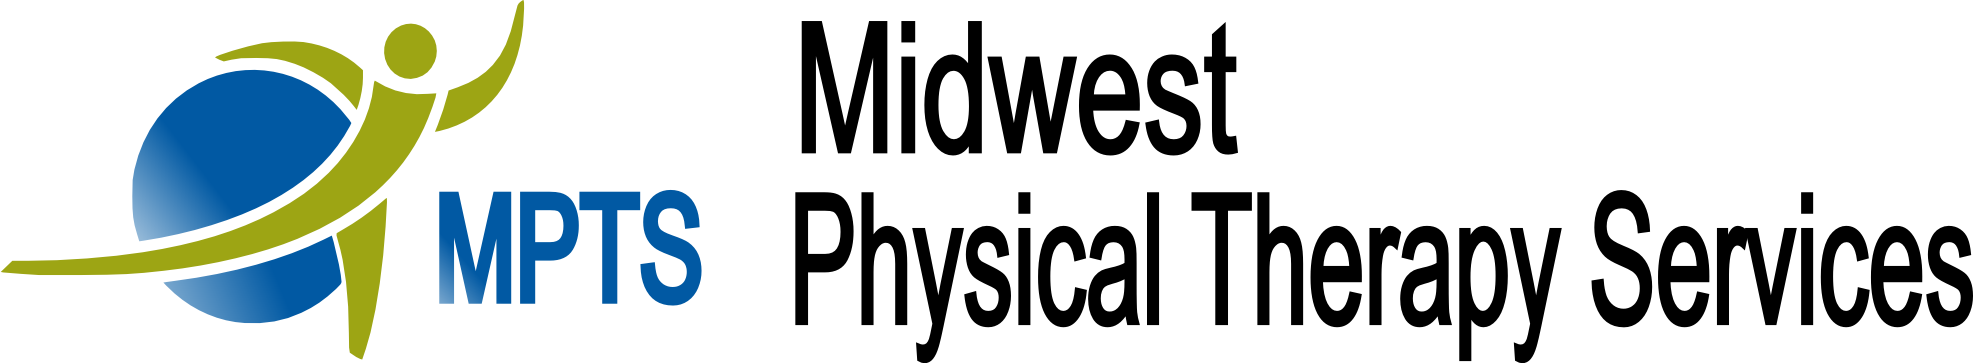 Midwest Physical Therapy Services - Board Certified in Women's Health